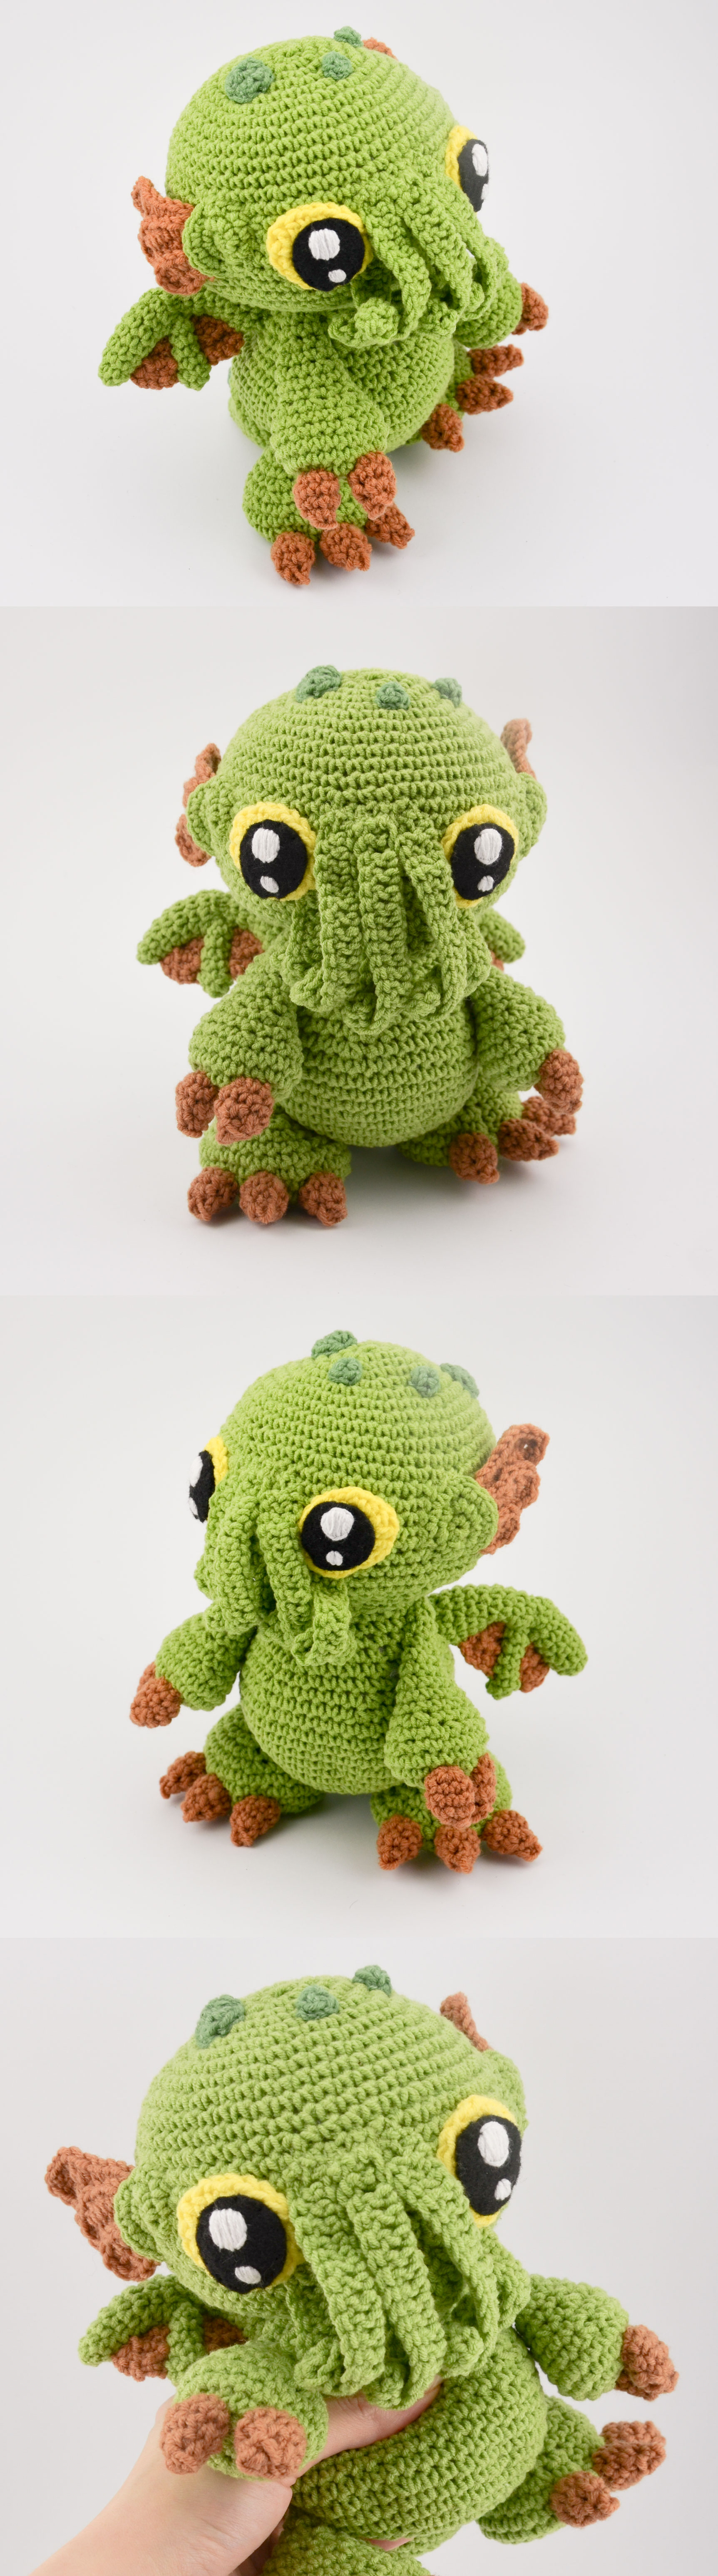 Krawka: Cthulhu baby monster from the abyss - lovecraft inspired ...